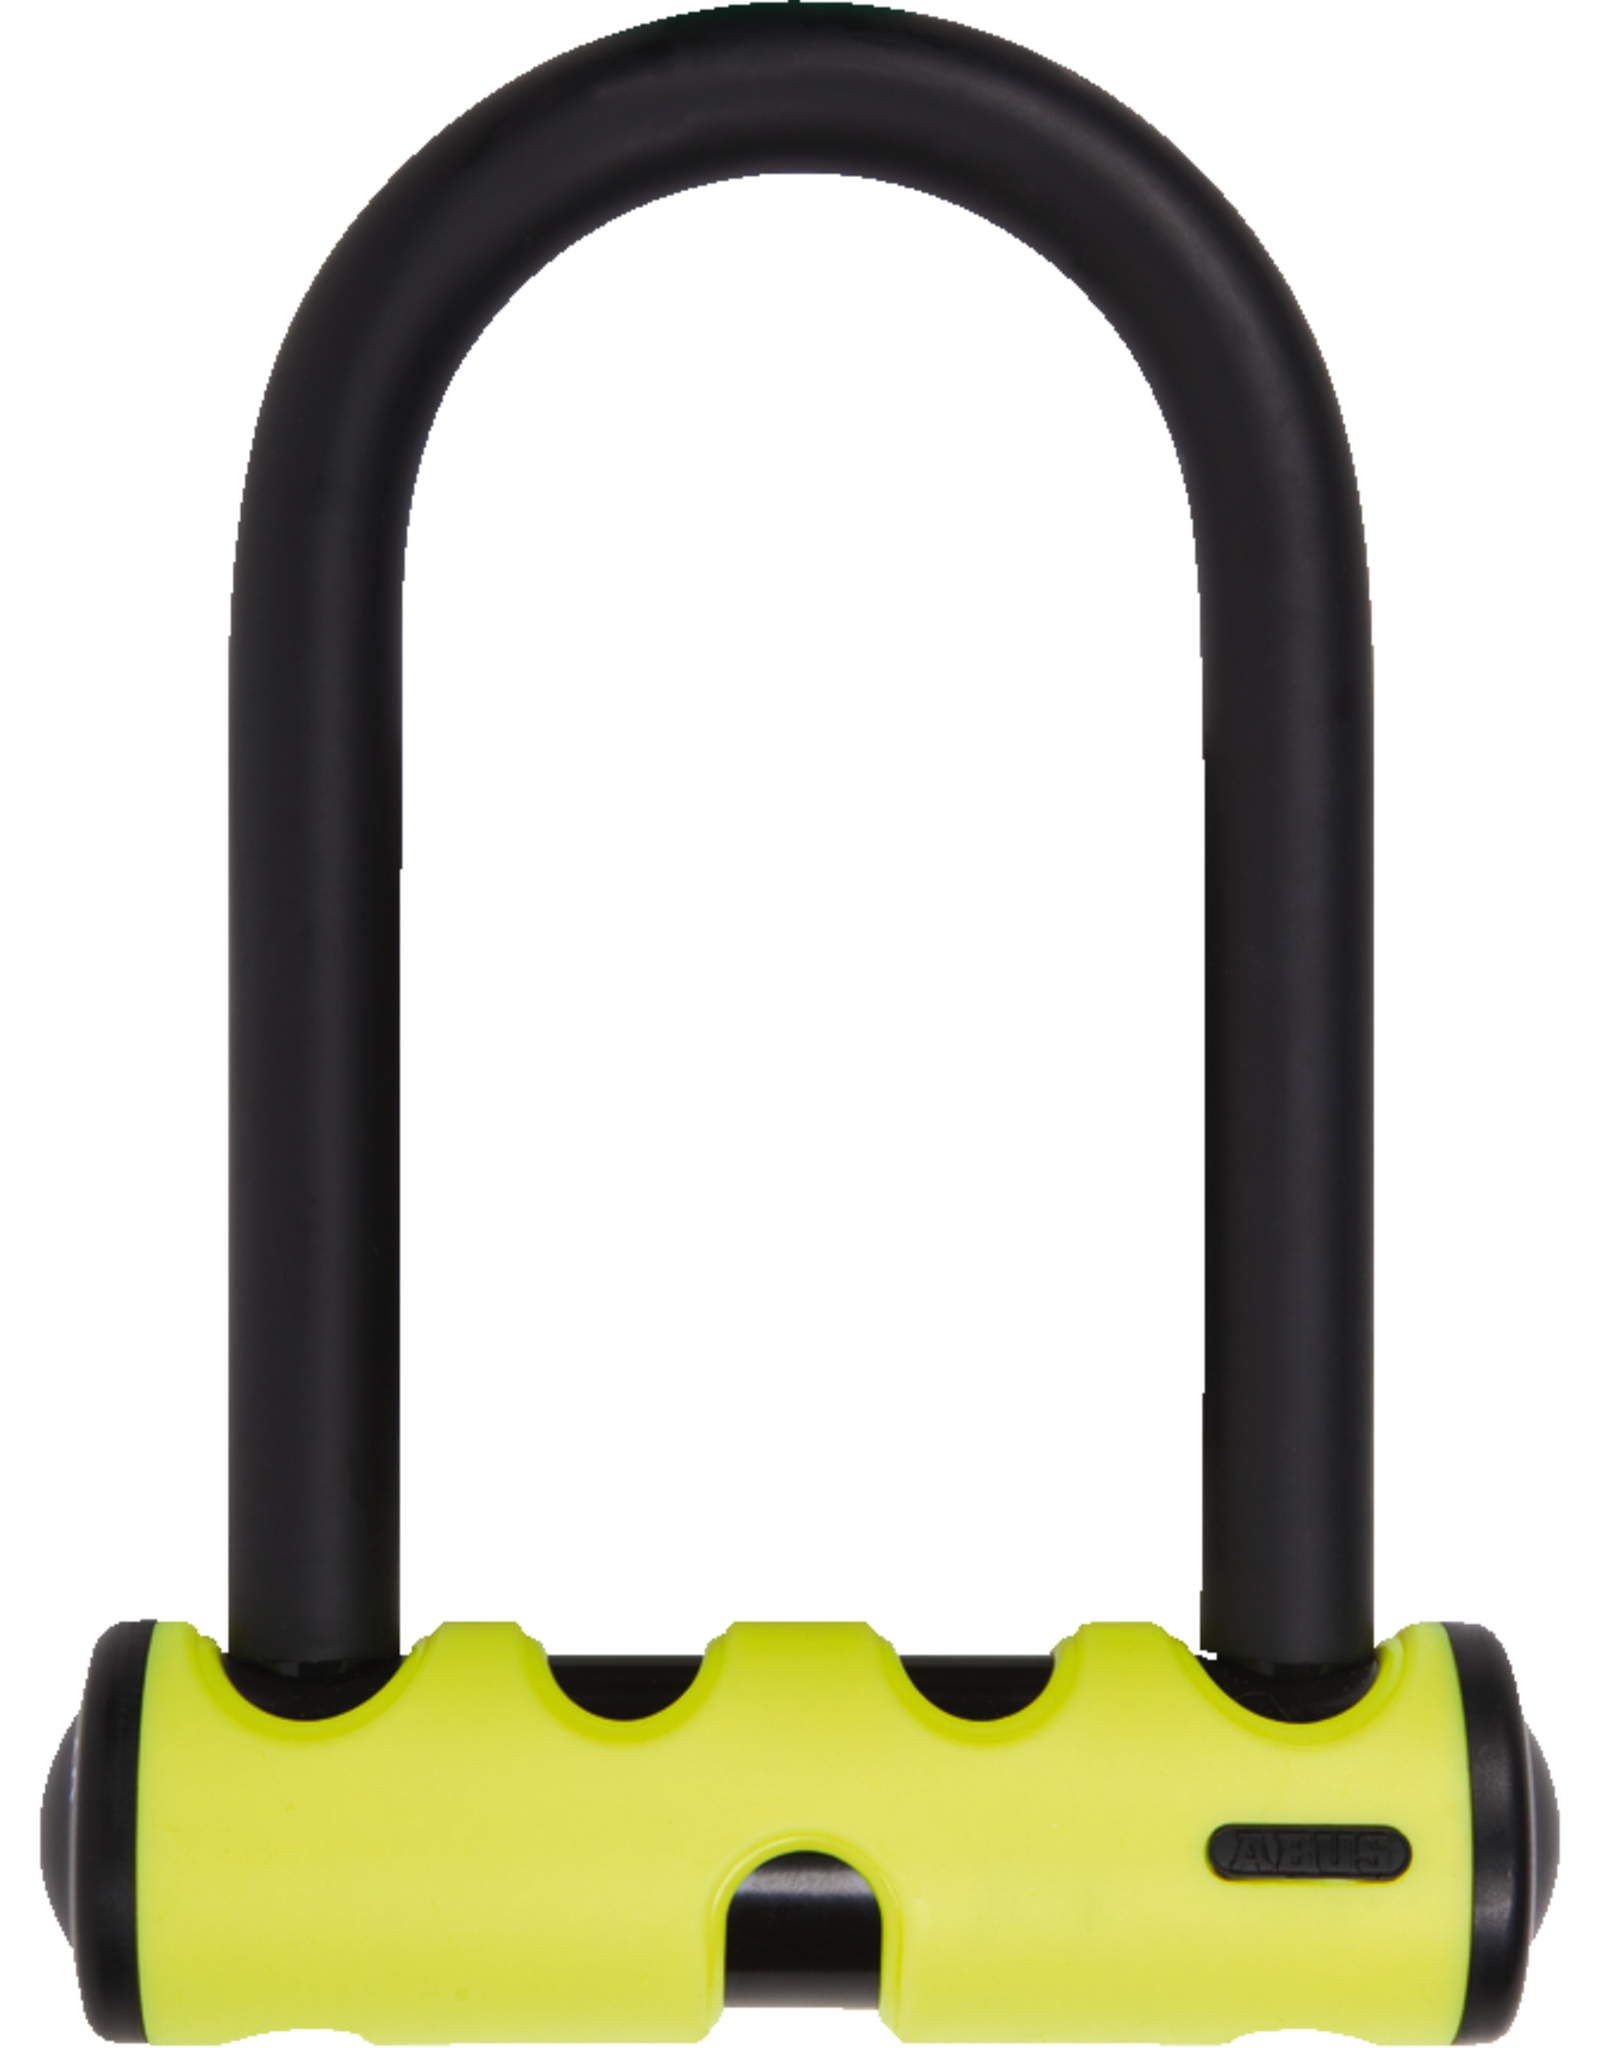 Abus Abus, U-Mini, U-Lock, Yellow, 14mm x 80mm x 143mm (14mm x 3.15'' x 5.6'')